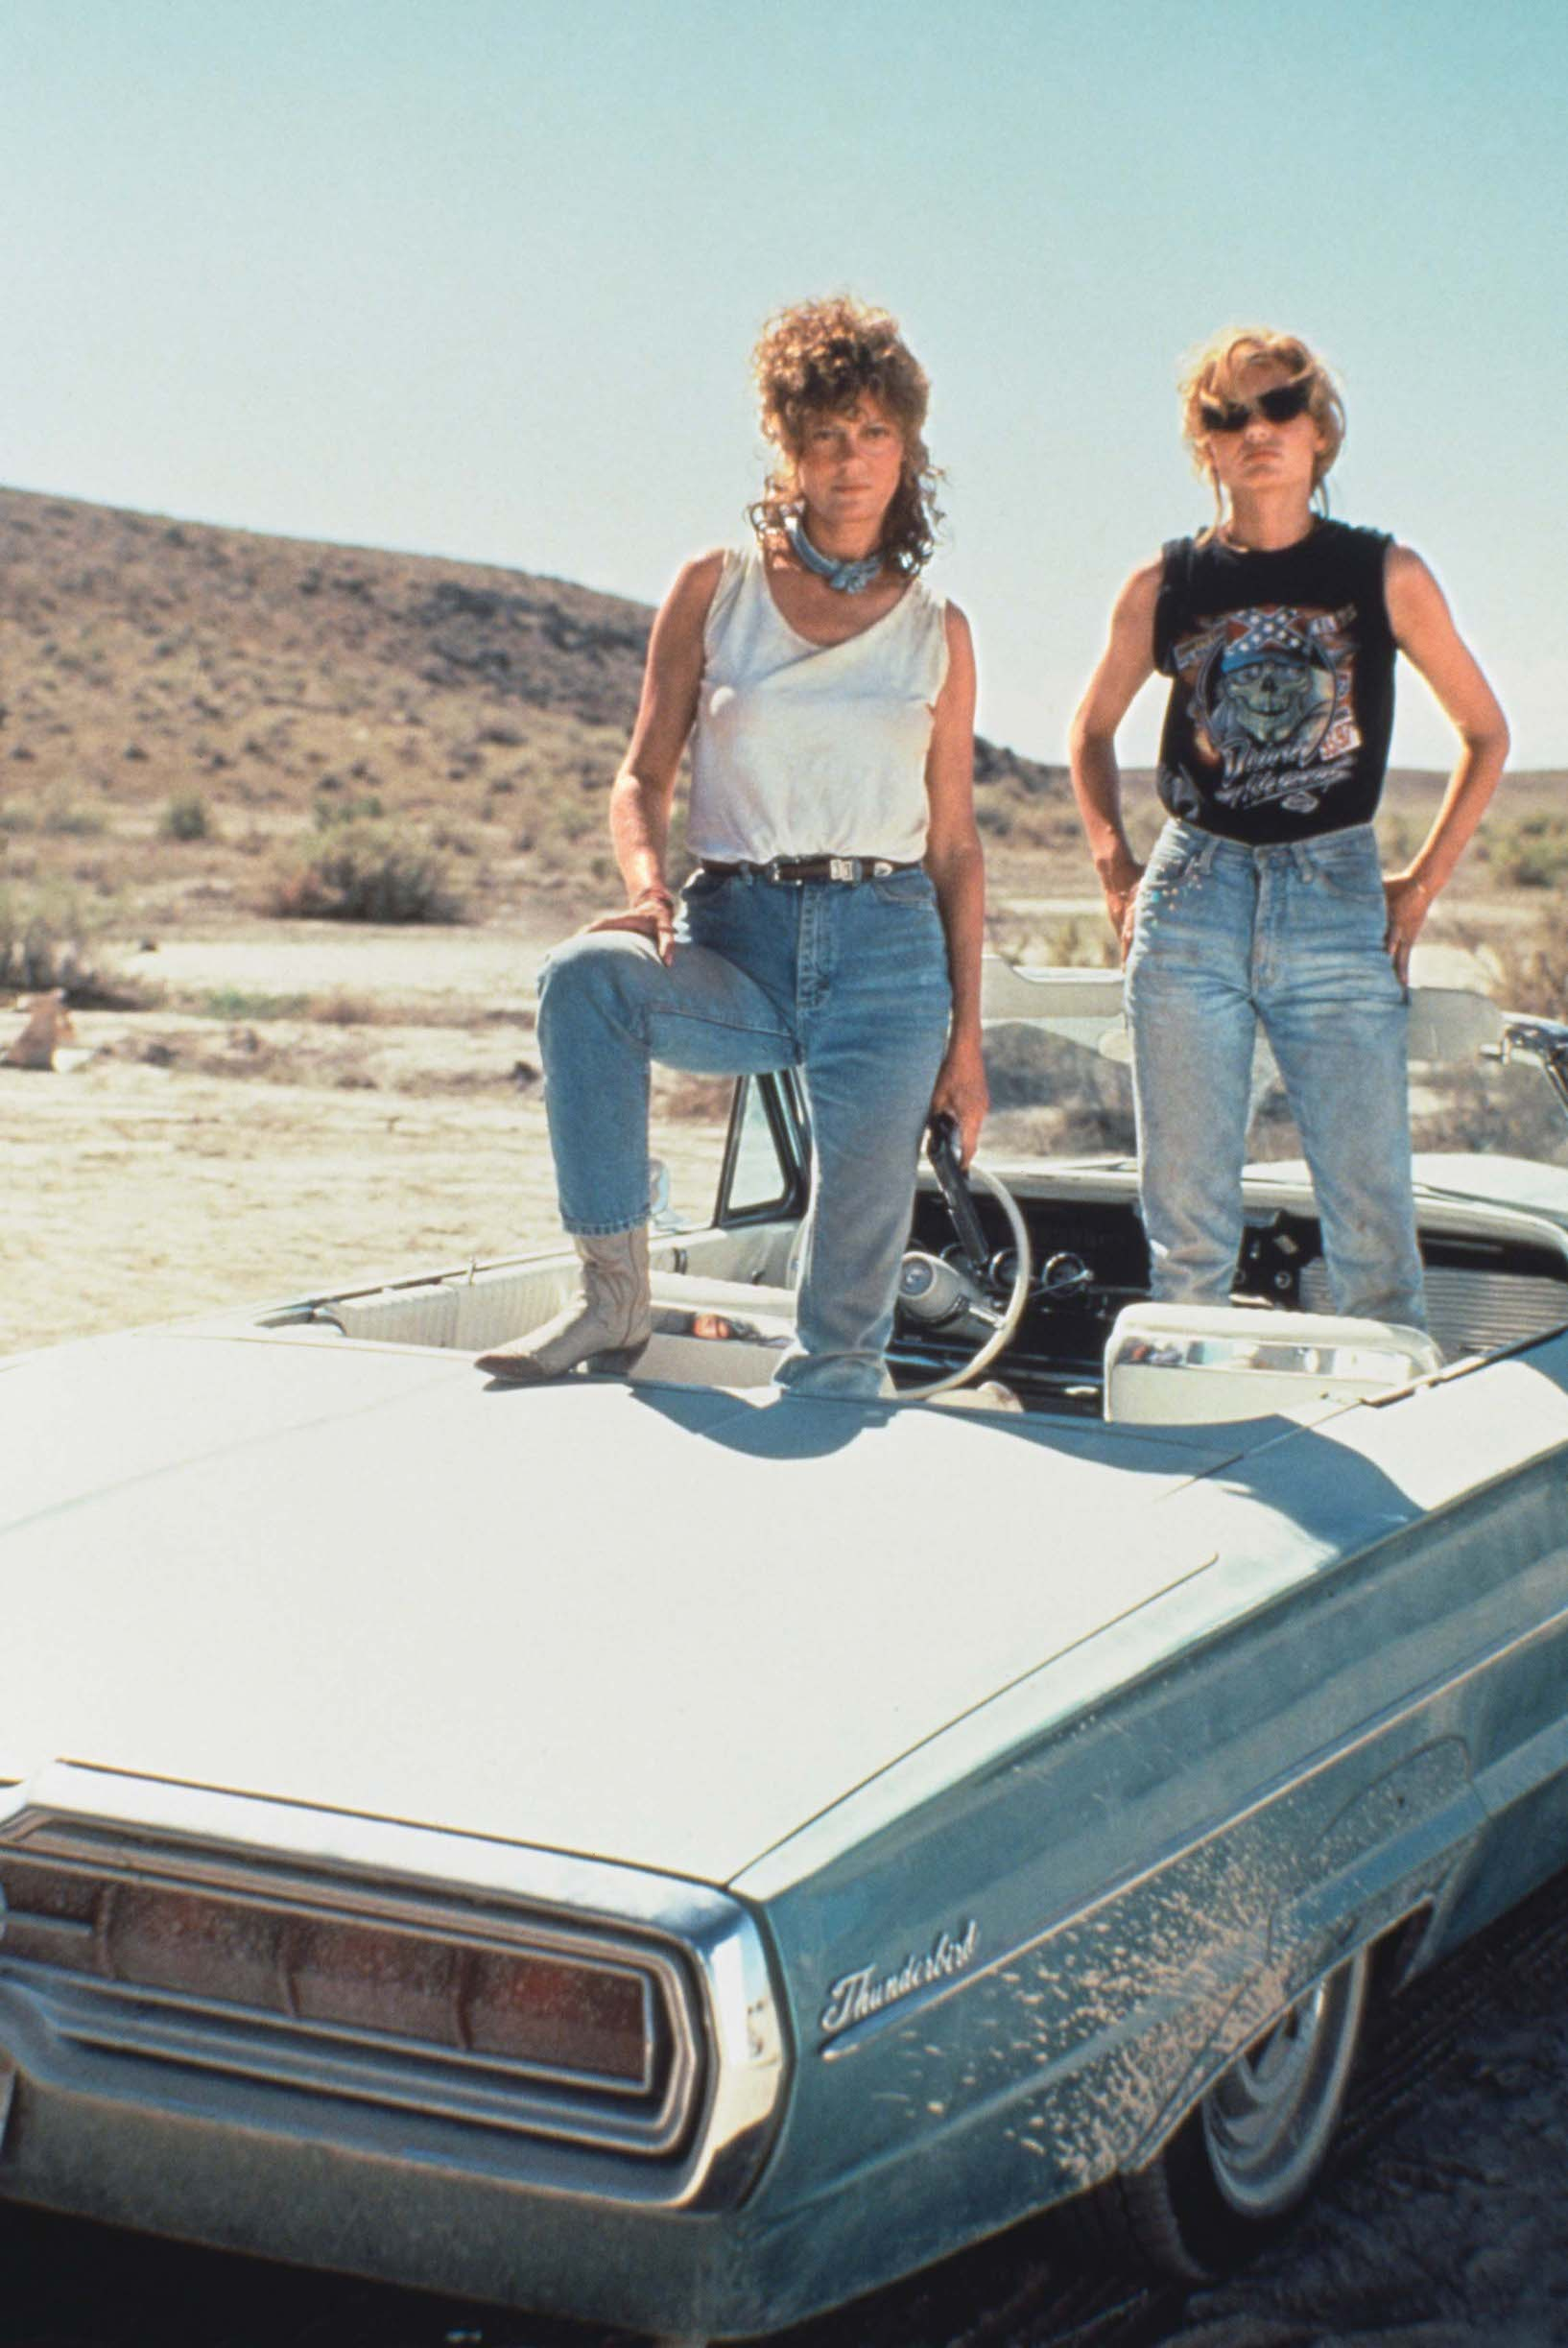 Actresses Susan Sarandon (left) and Geena Davis pose on their 1966 Ford Thunderbird, for the film 'Thelma And Louise', 1991. (Photo by Fotos International/Getty Images)